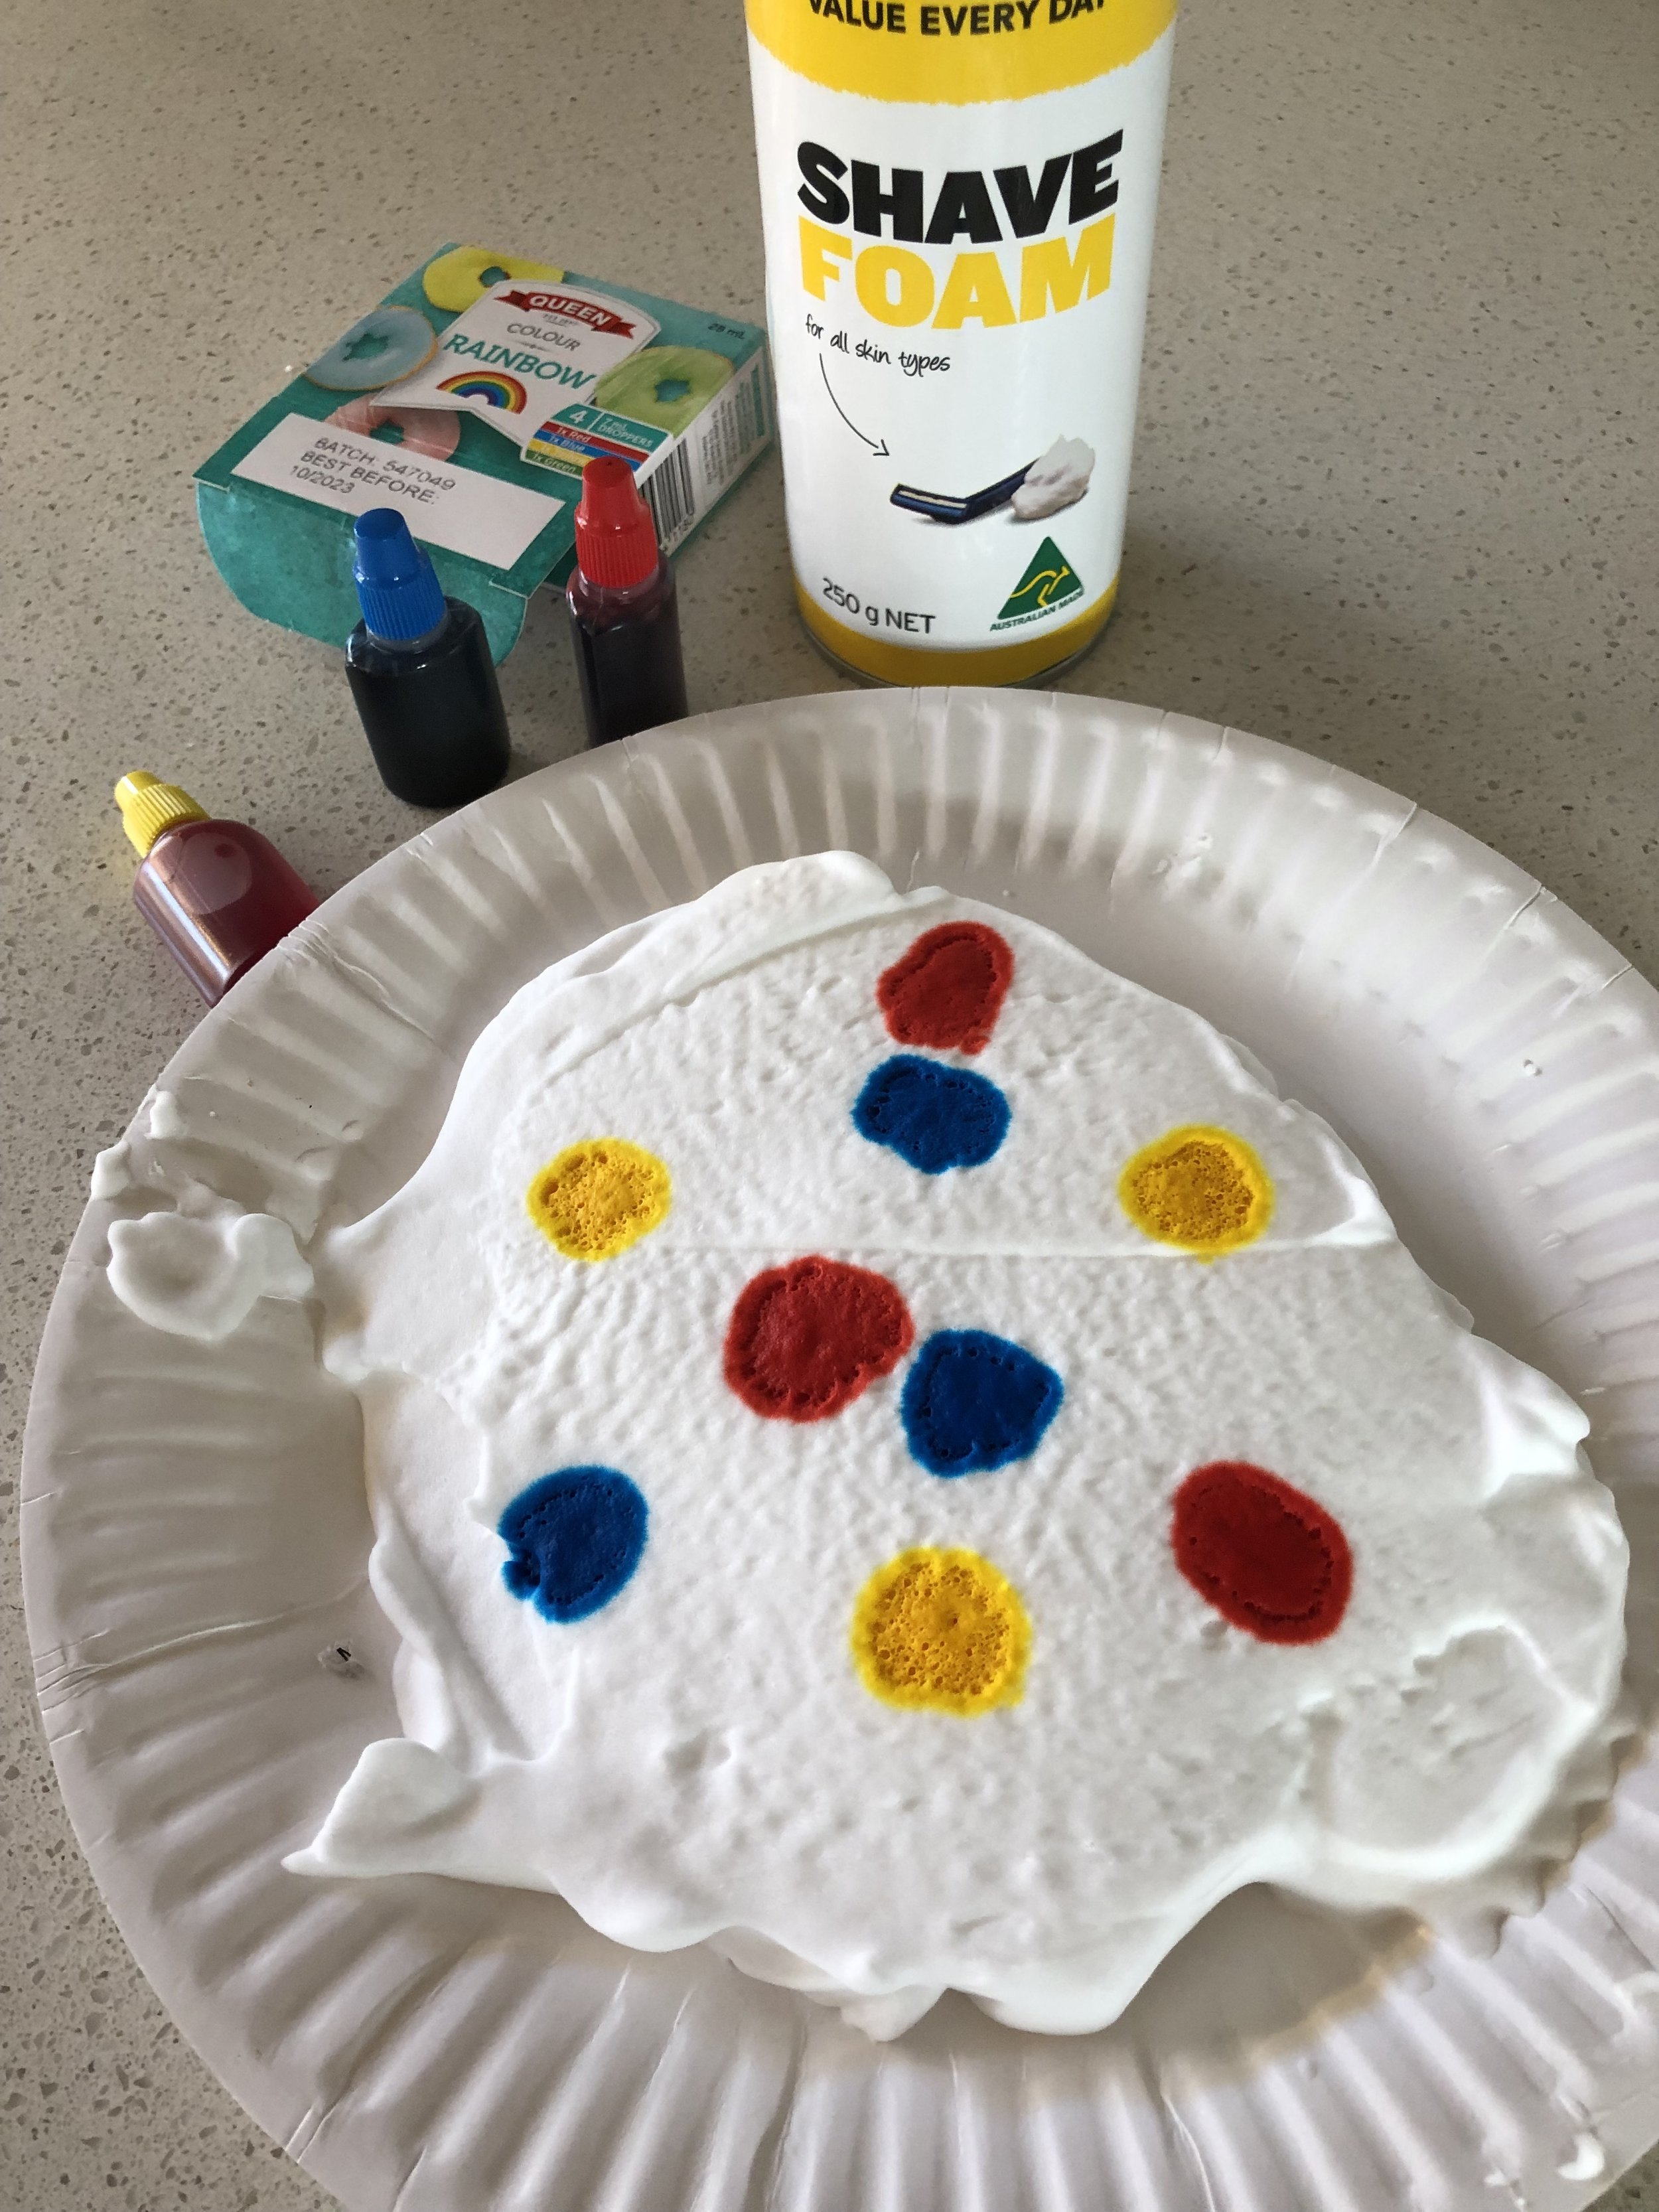 These small squirt bottles of food dye were ideal for this activity.